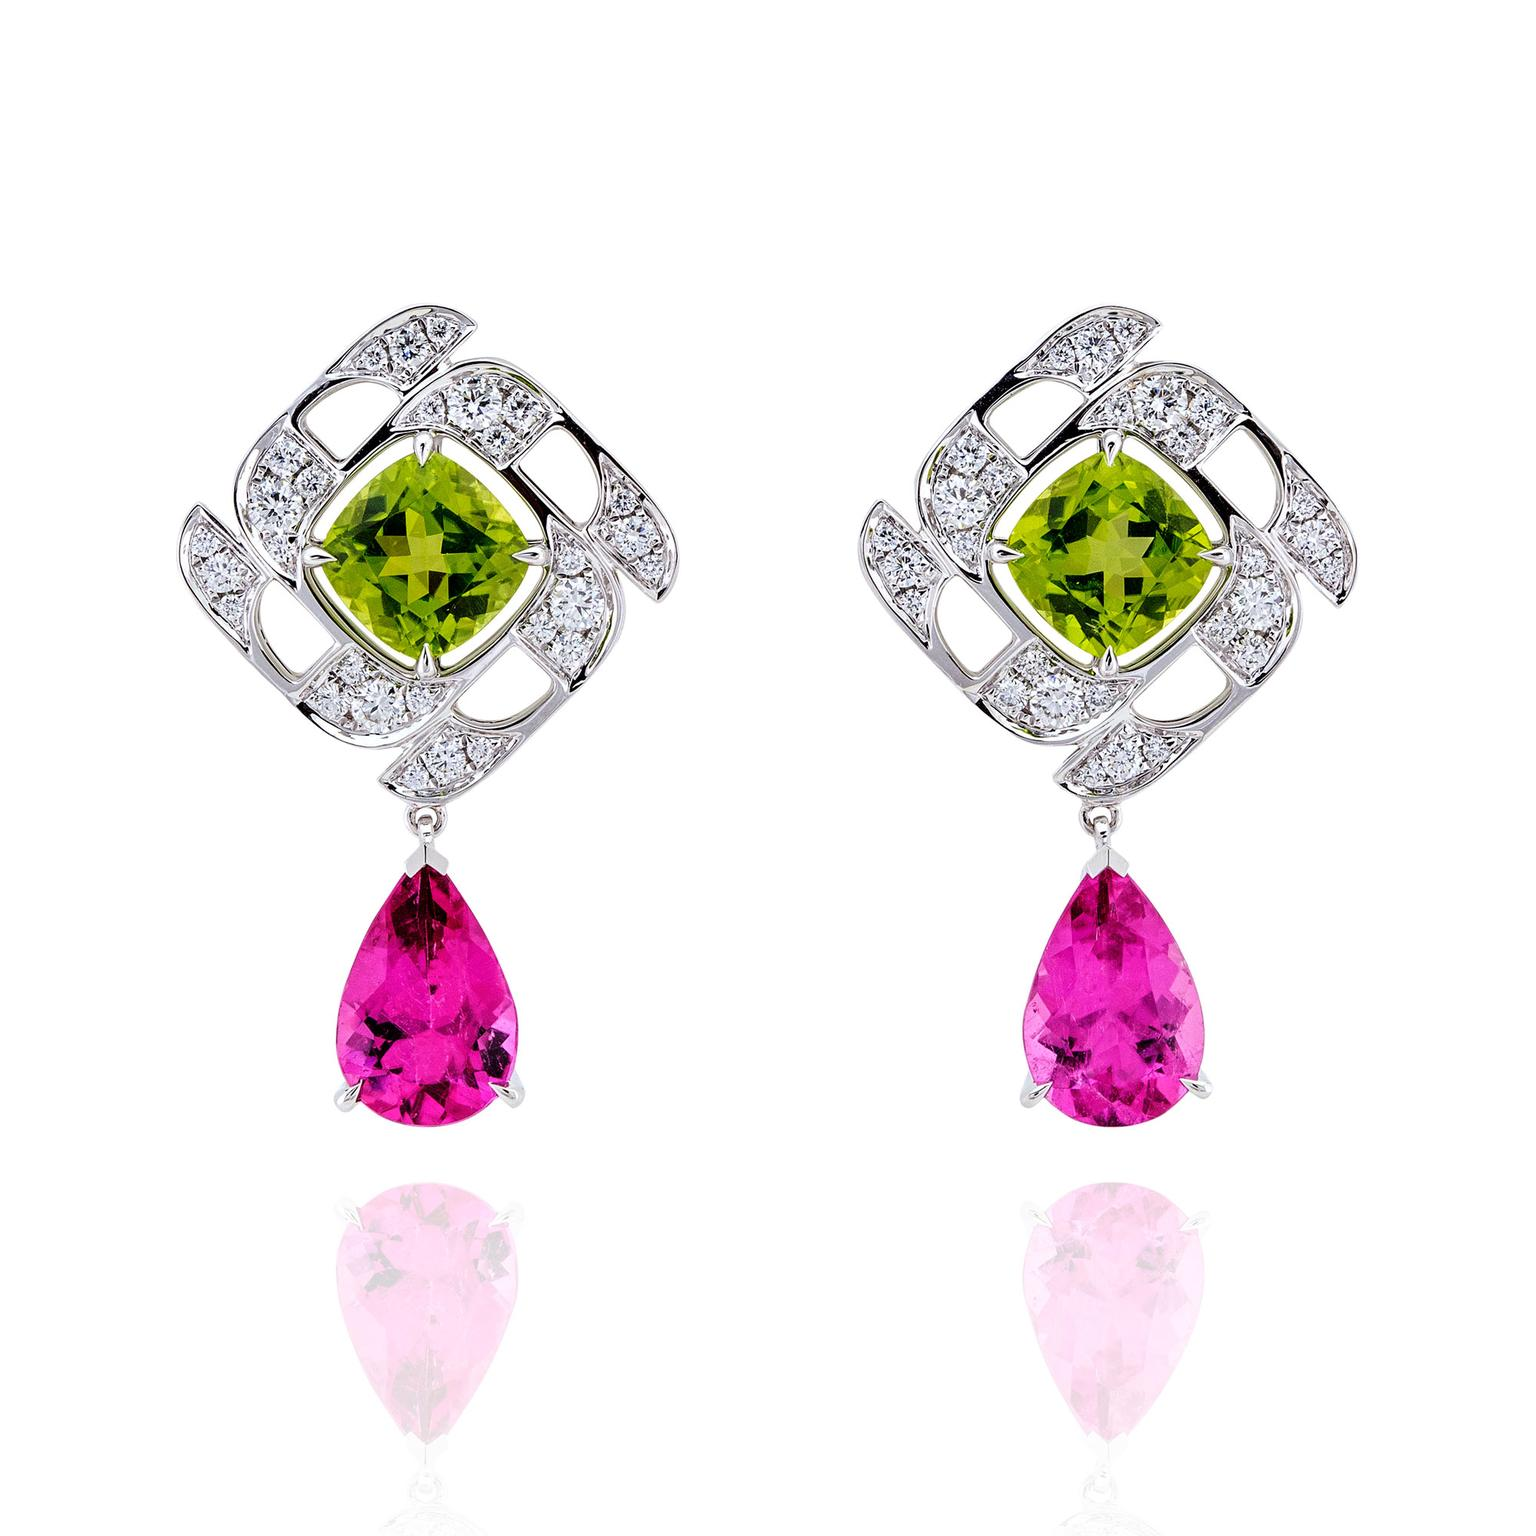 Boodles Prism peridot and rubellite earrings with diamonds